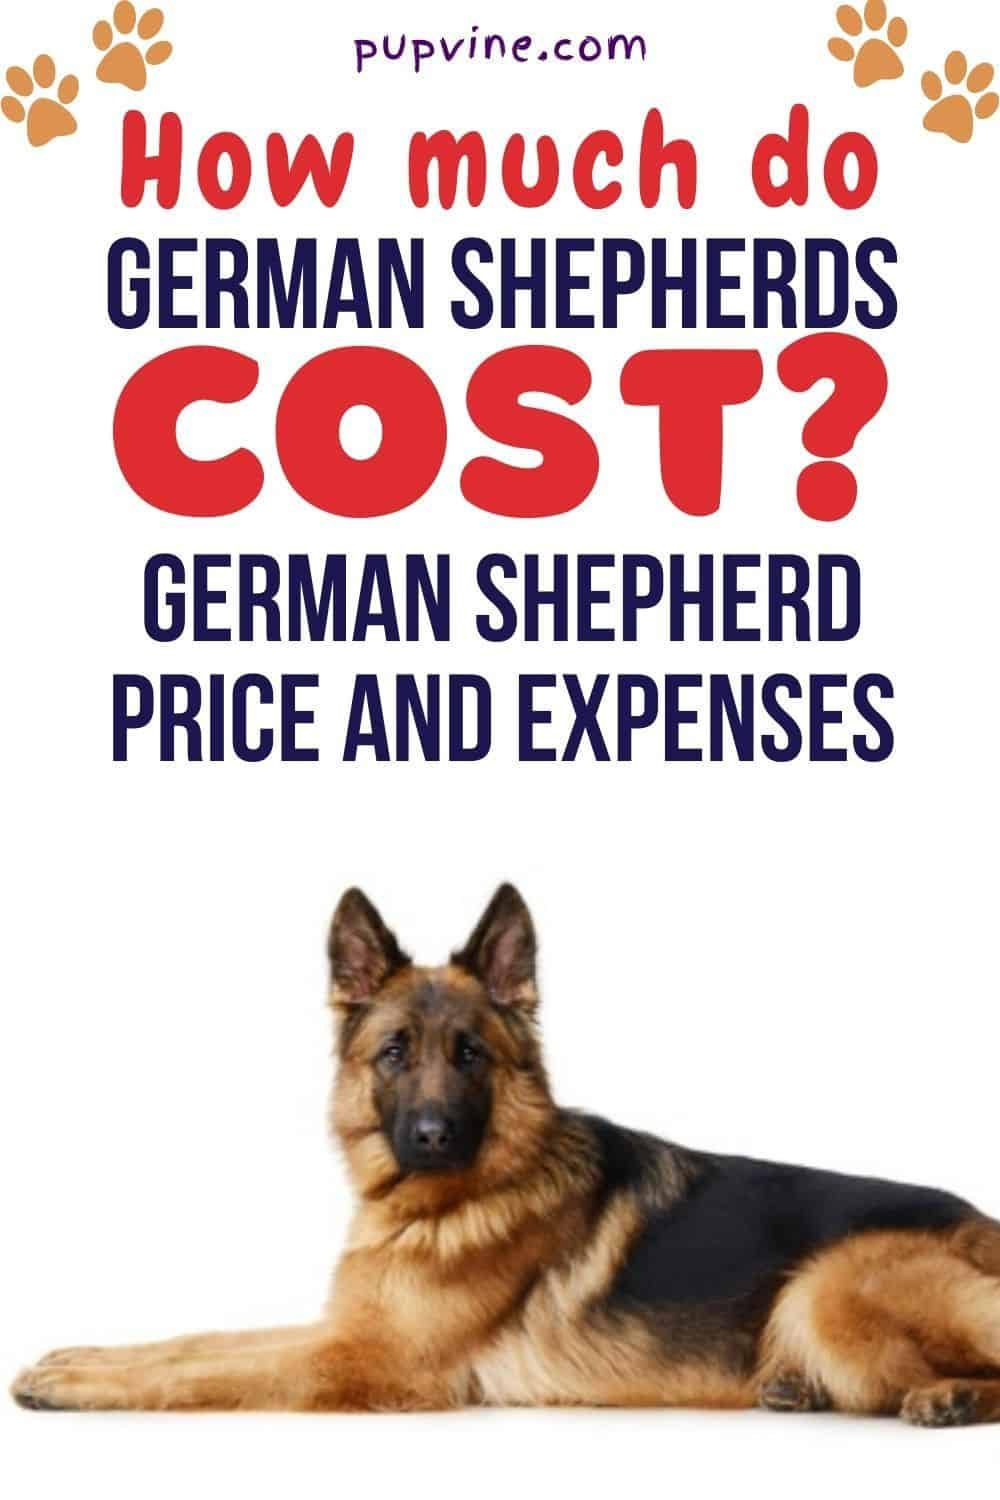 How Much Do German Shepherds Cost? German Shepherd Price And Expenses